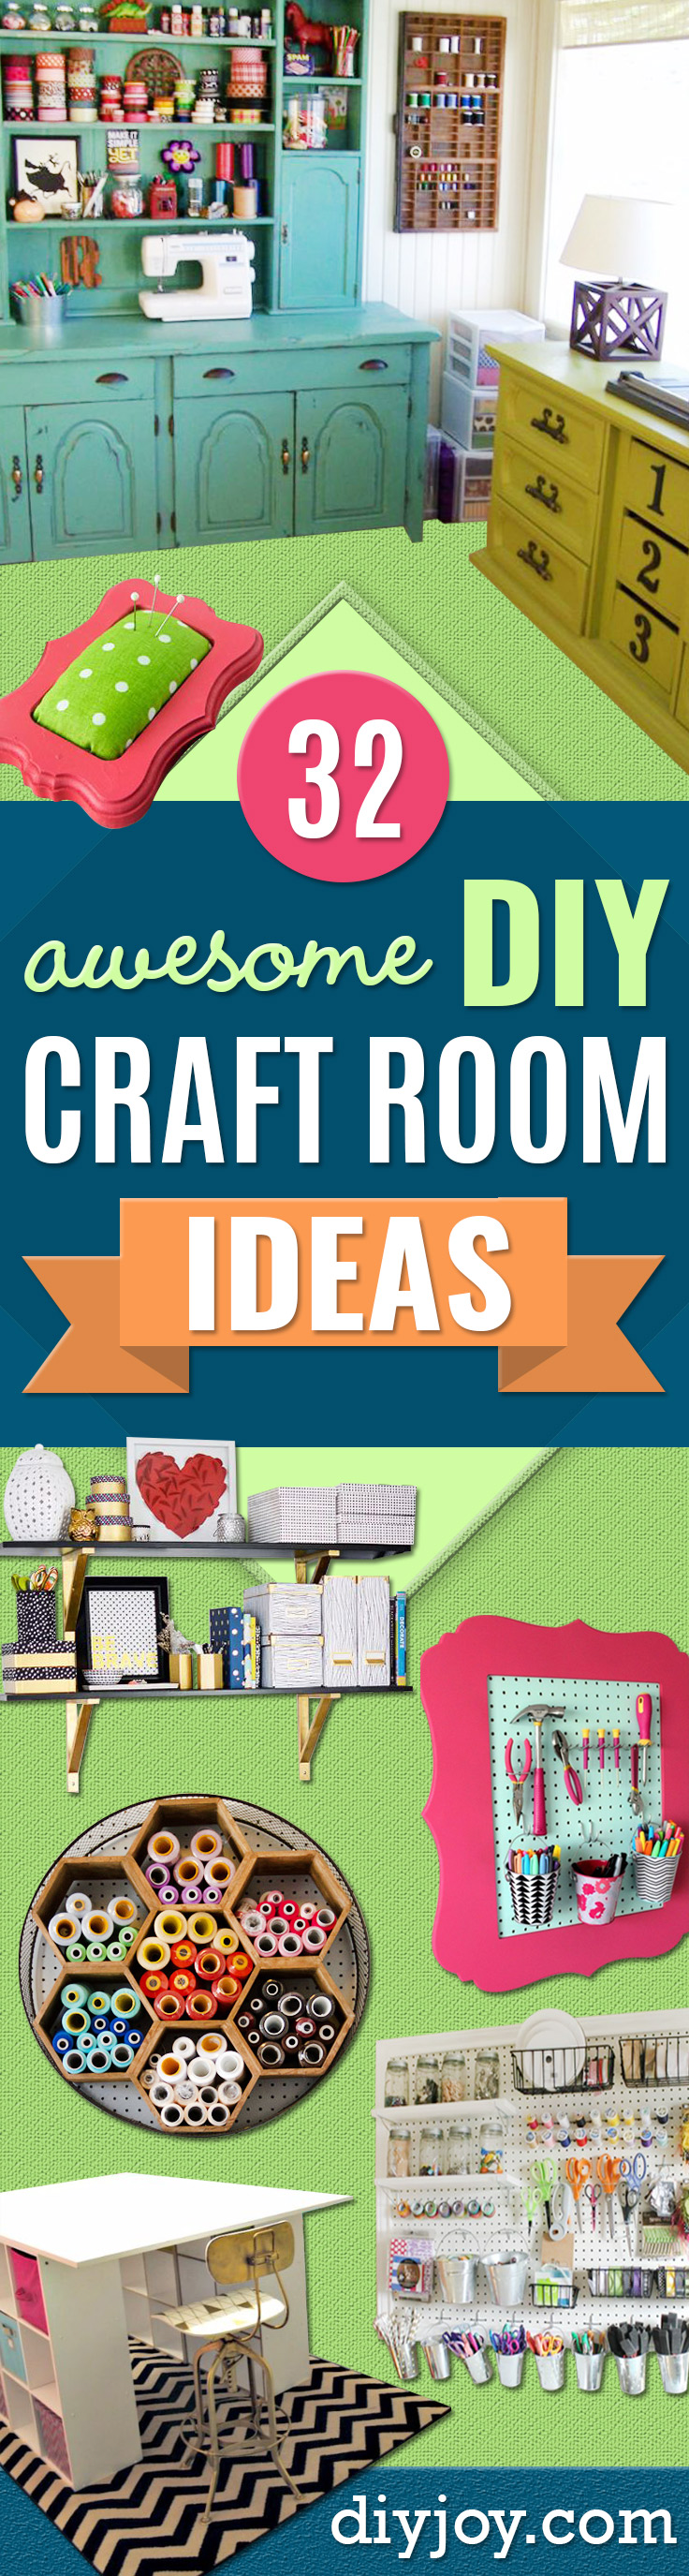 DIY Craft Room Ideas and Craft Room Organization Projects - Cool Ideas for Do It Yourself Craft Storage, Craft Room Decor and Organizing Project Ideas - fabric, paper, pens, creative tools, crafts supplies, shelves and sewing notions http://diyjoy.com/craft-room-organizing-ideas